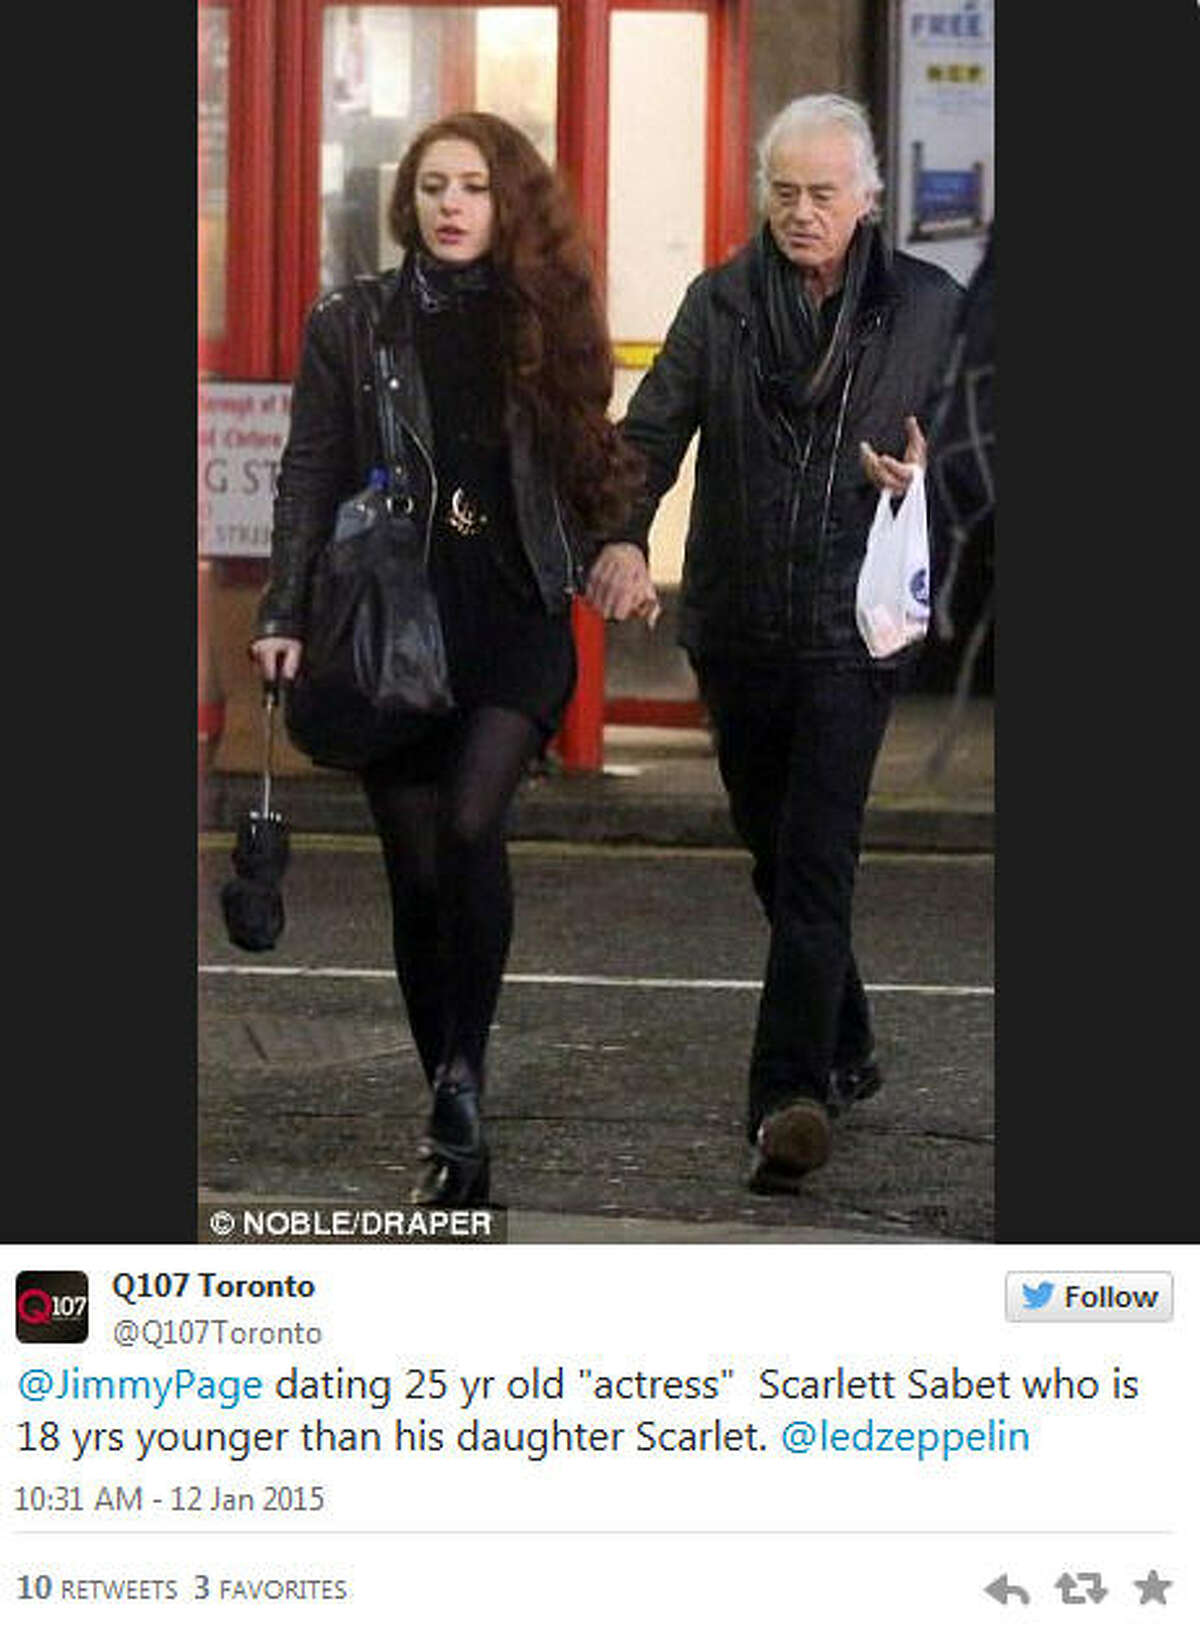 Led Zeppelin's former guitarist Jimmy Page was spotted hand-in-hand with a new lady friend, but that's not what's leaving fans dazed and confused. The woman in question is a 25-year-old actress named Scarlett Sabet, who is 46 years younger than the 71-year-old rock god. To go next-level with this, Page's latest girlfriend is 18 years younger than his daughter who shares the same name (well, almost. His daughter's name is Scarlet, with one